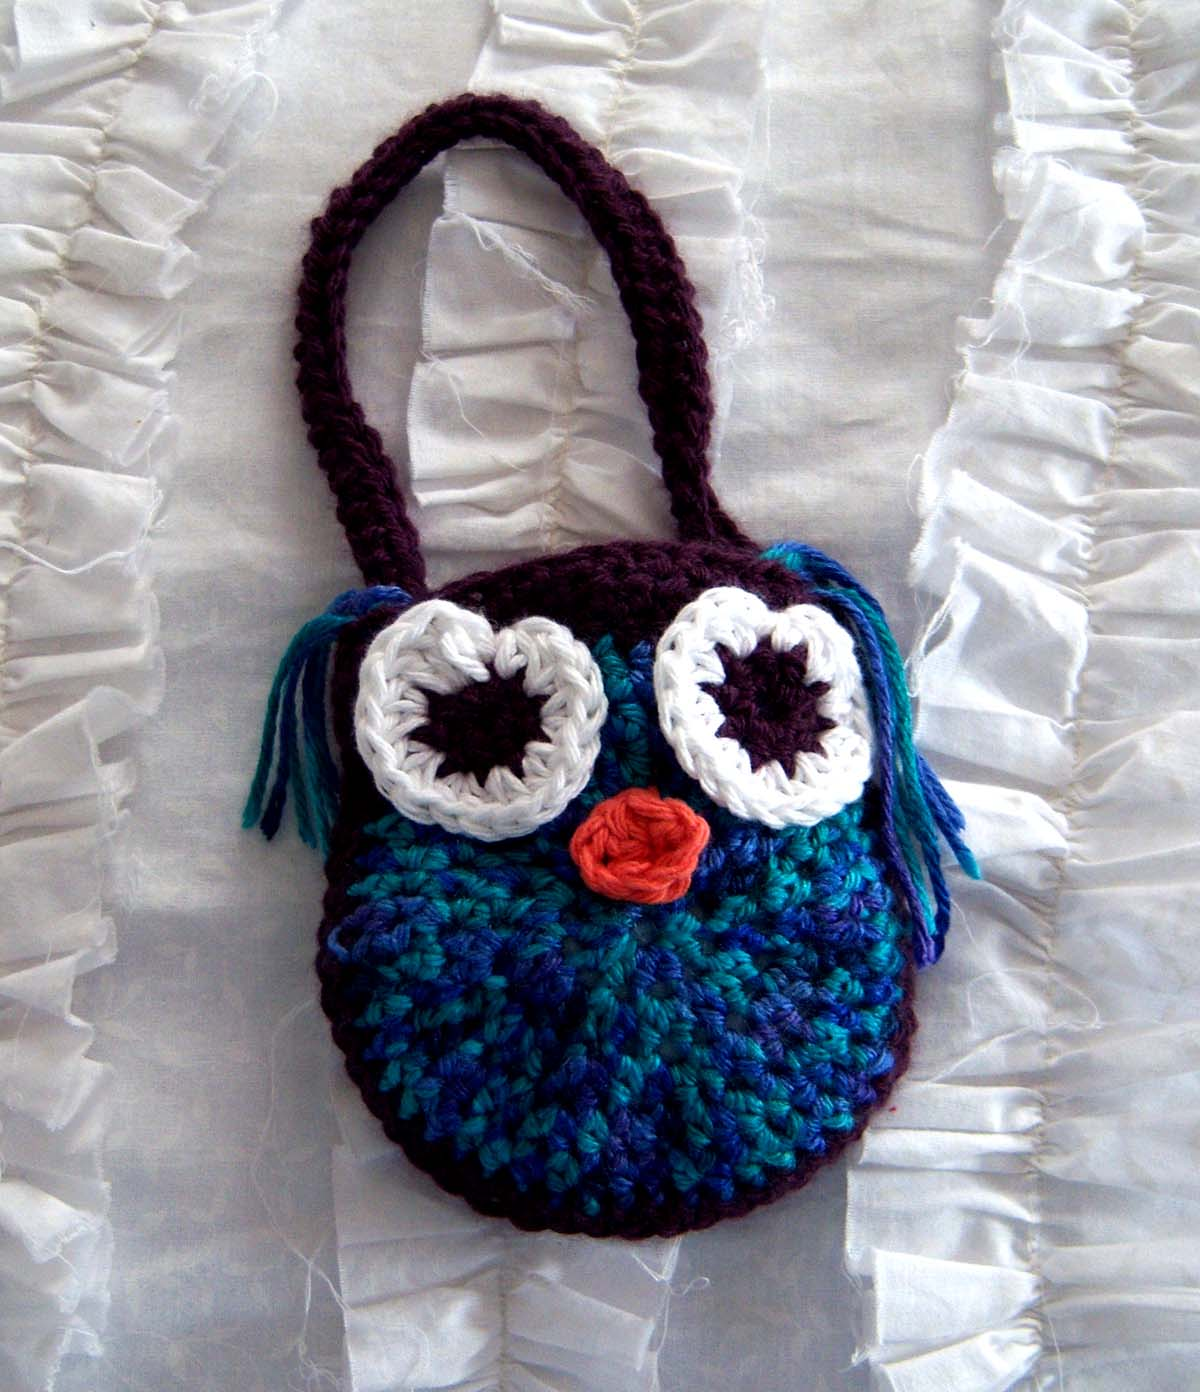 Shoregirls creations february 2012 owl purses i found this adorable pattern for a crocheted owl purse bankloansurffo Image collections